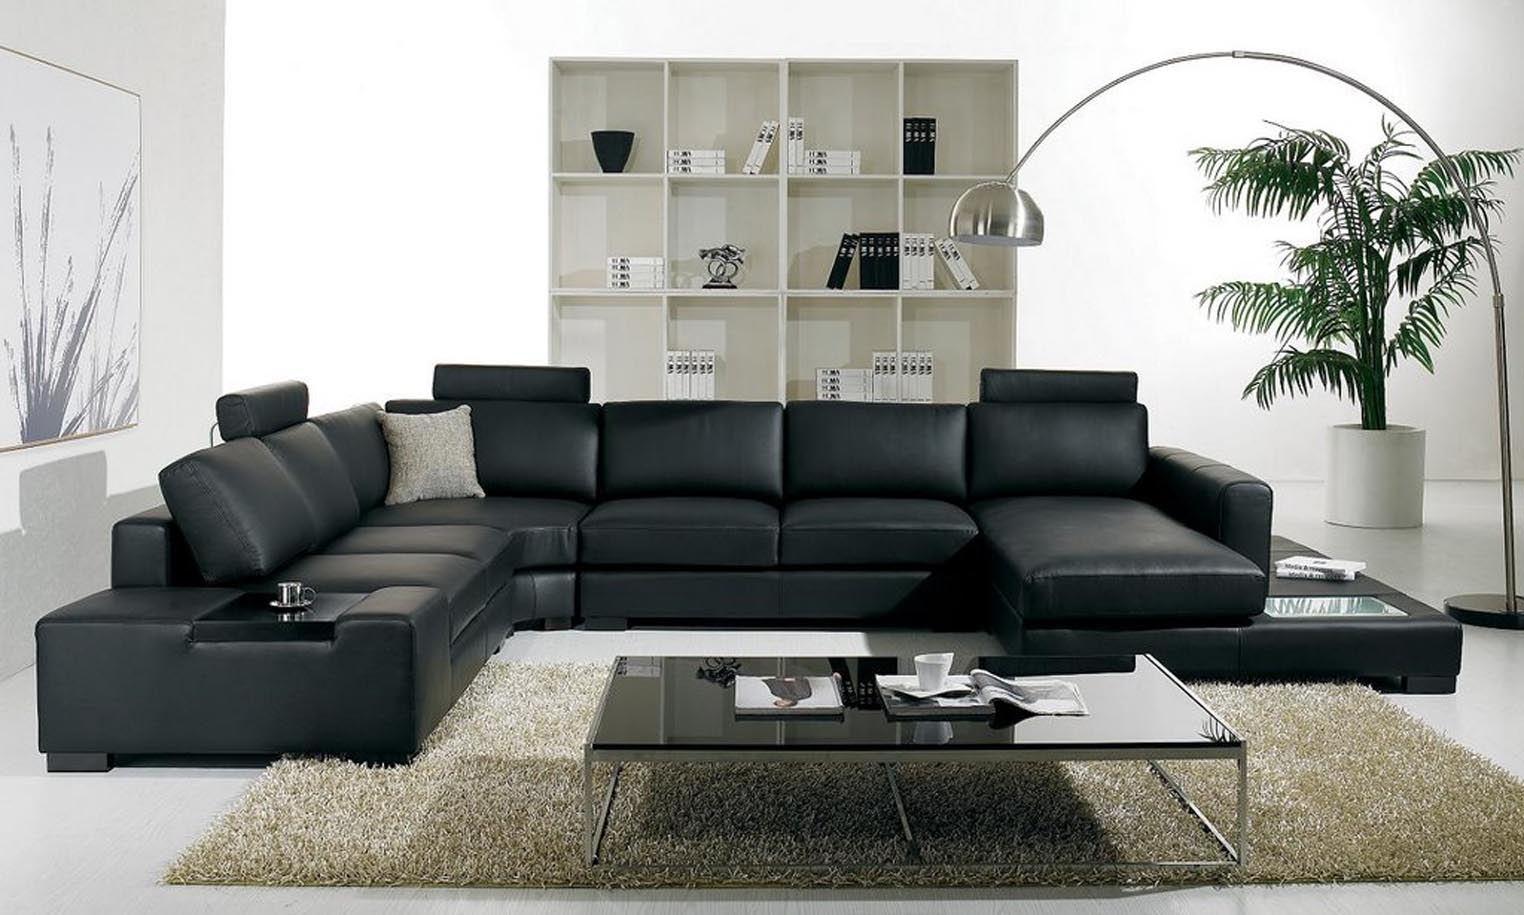 Luxury Black Leather Sectional Sofa For Living Room Interior Decoration With Cool Glass Top Coffee Table